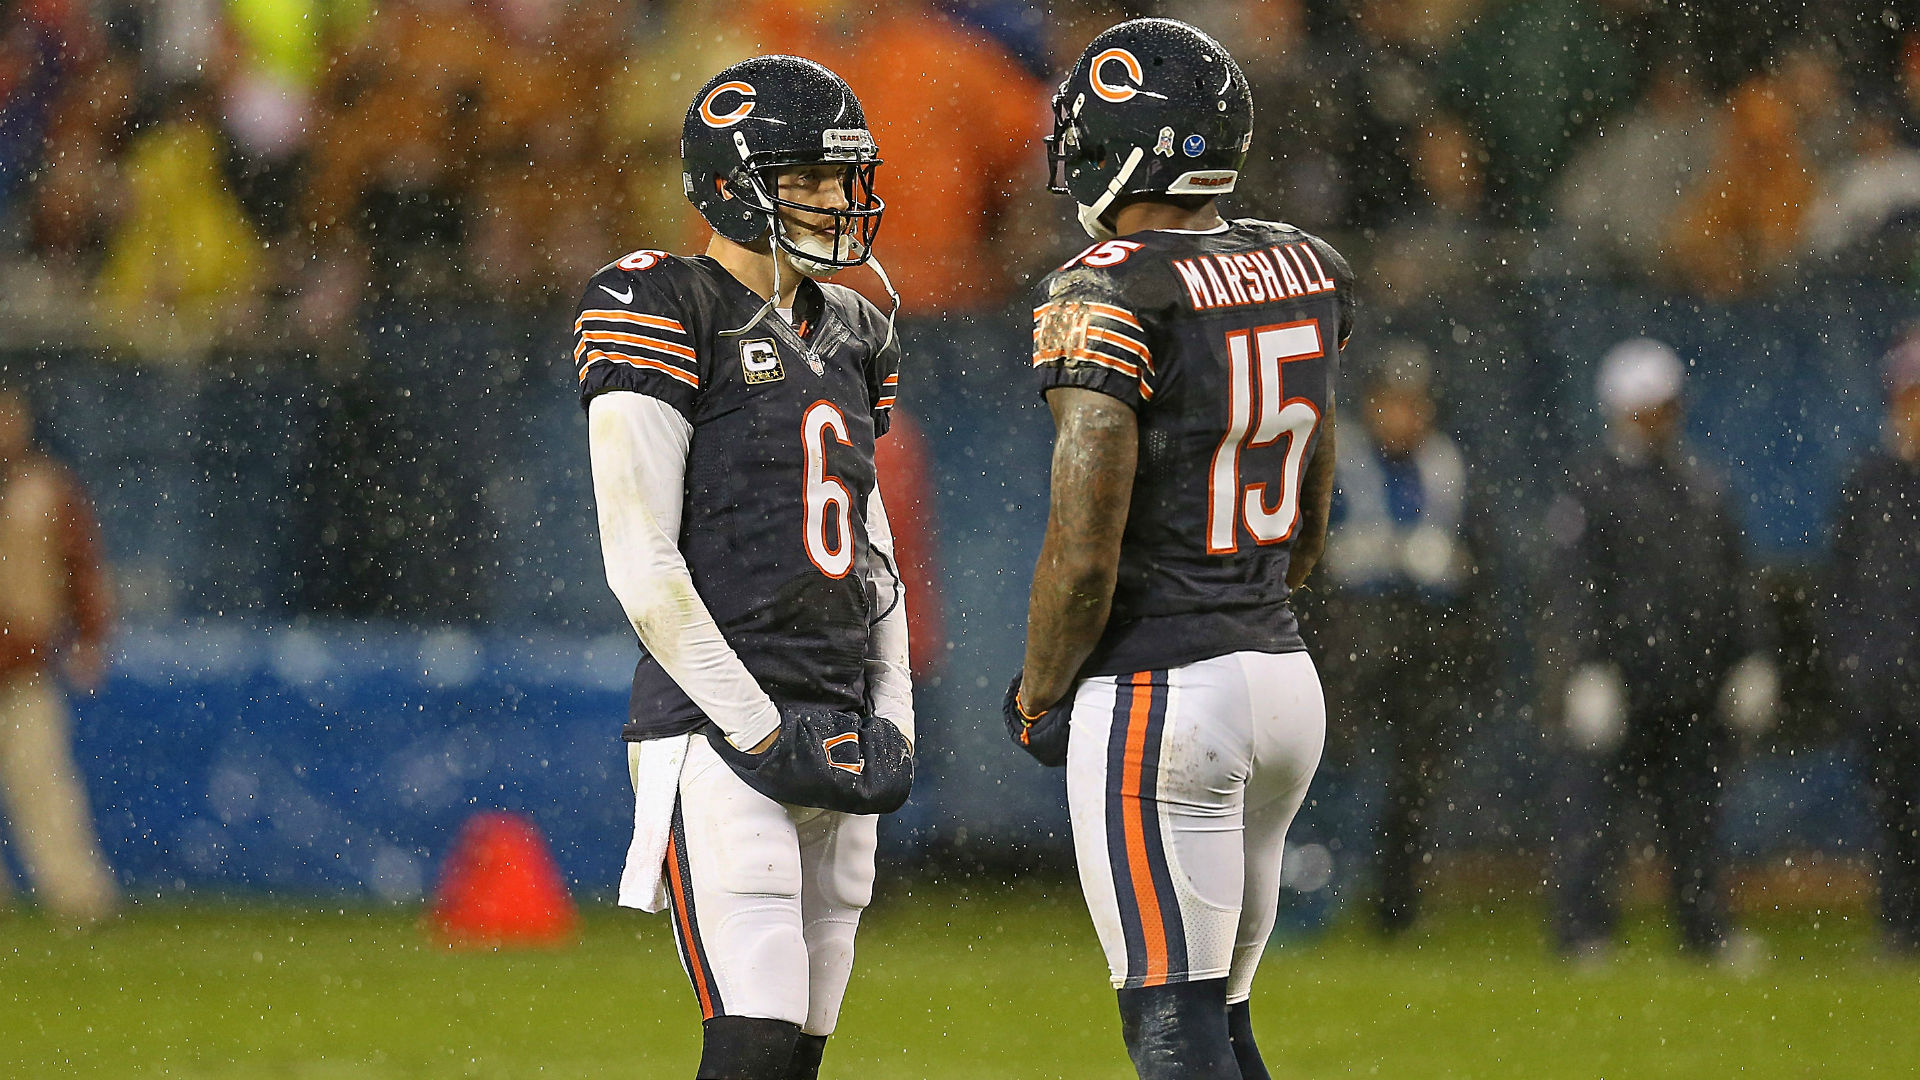 Jay Cutler on Brandon Marshall: 'No one likes their ex after a breakup'